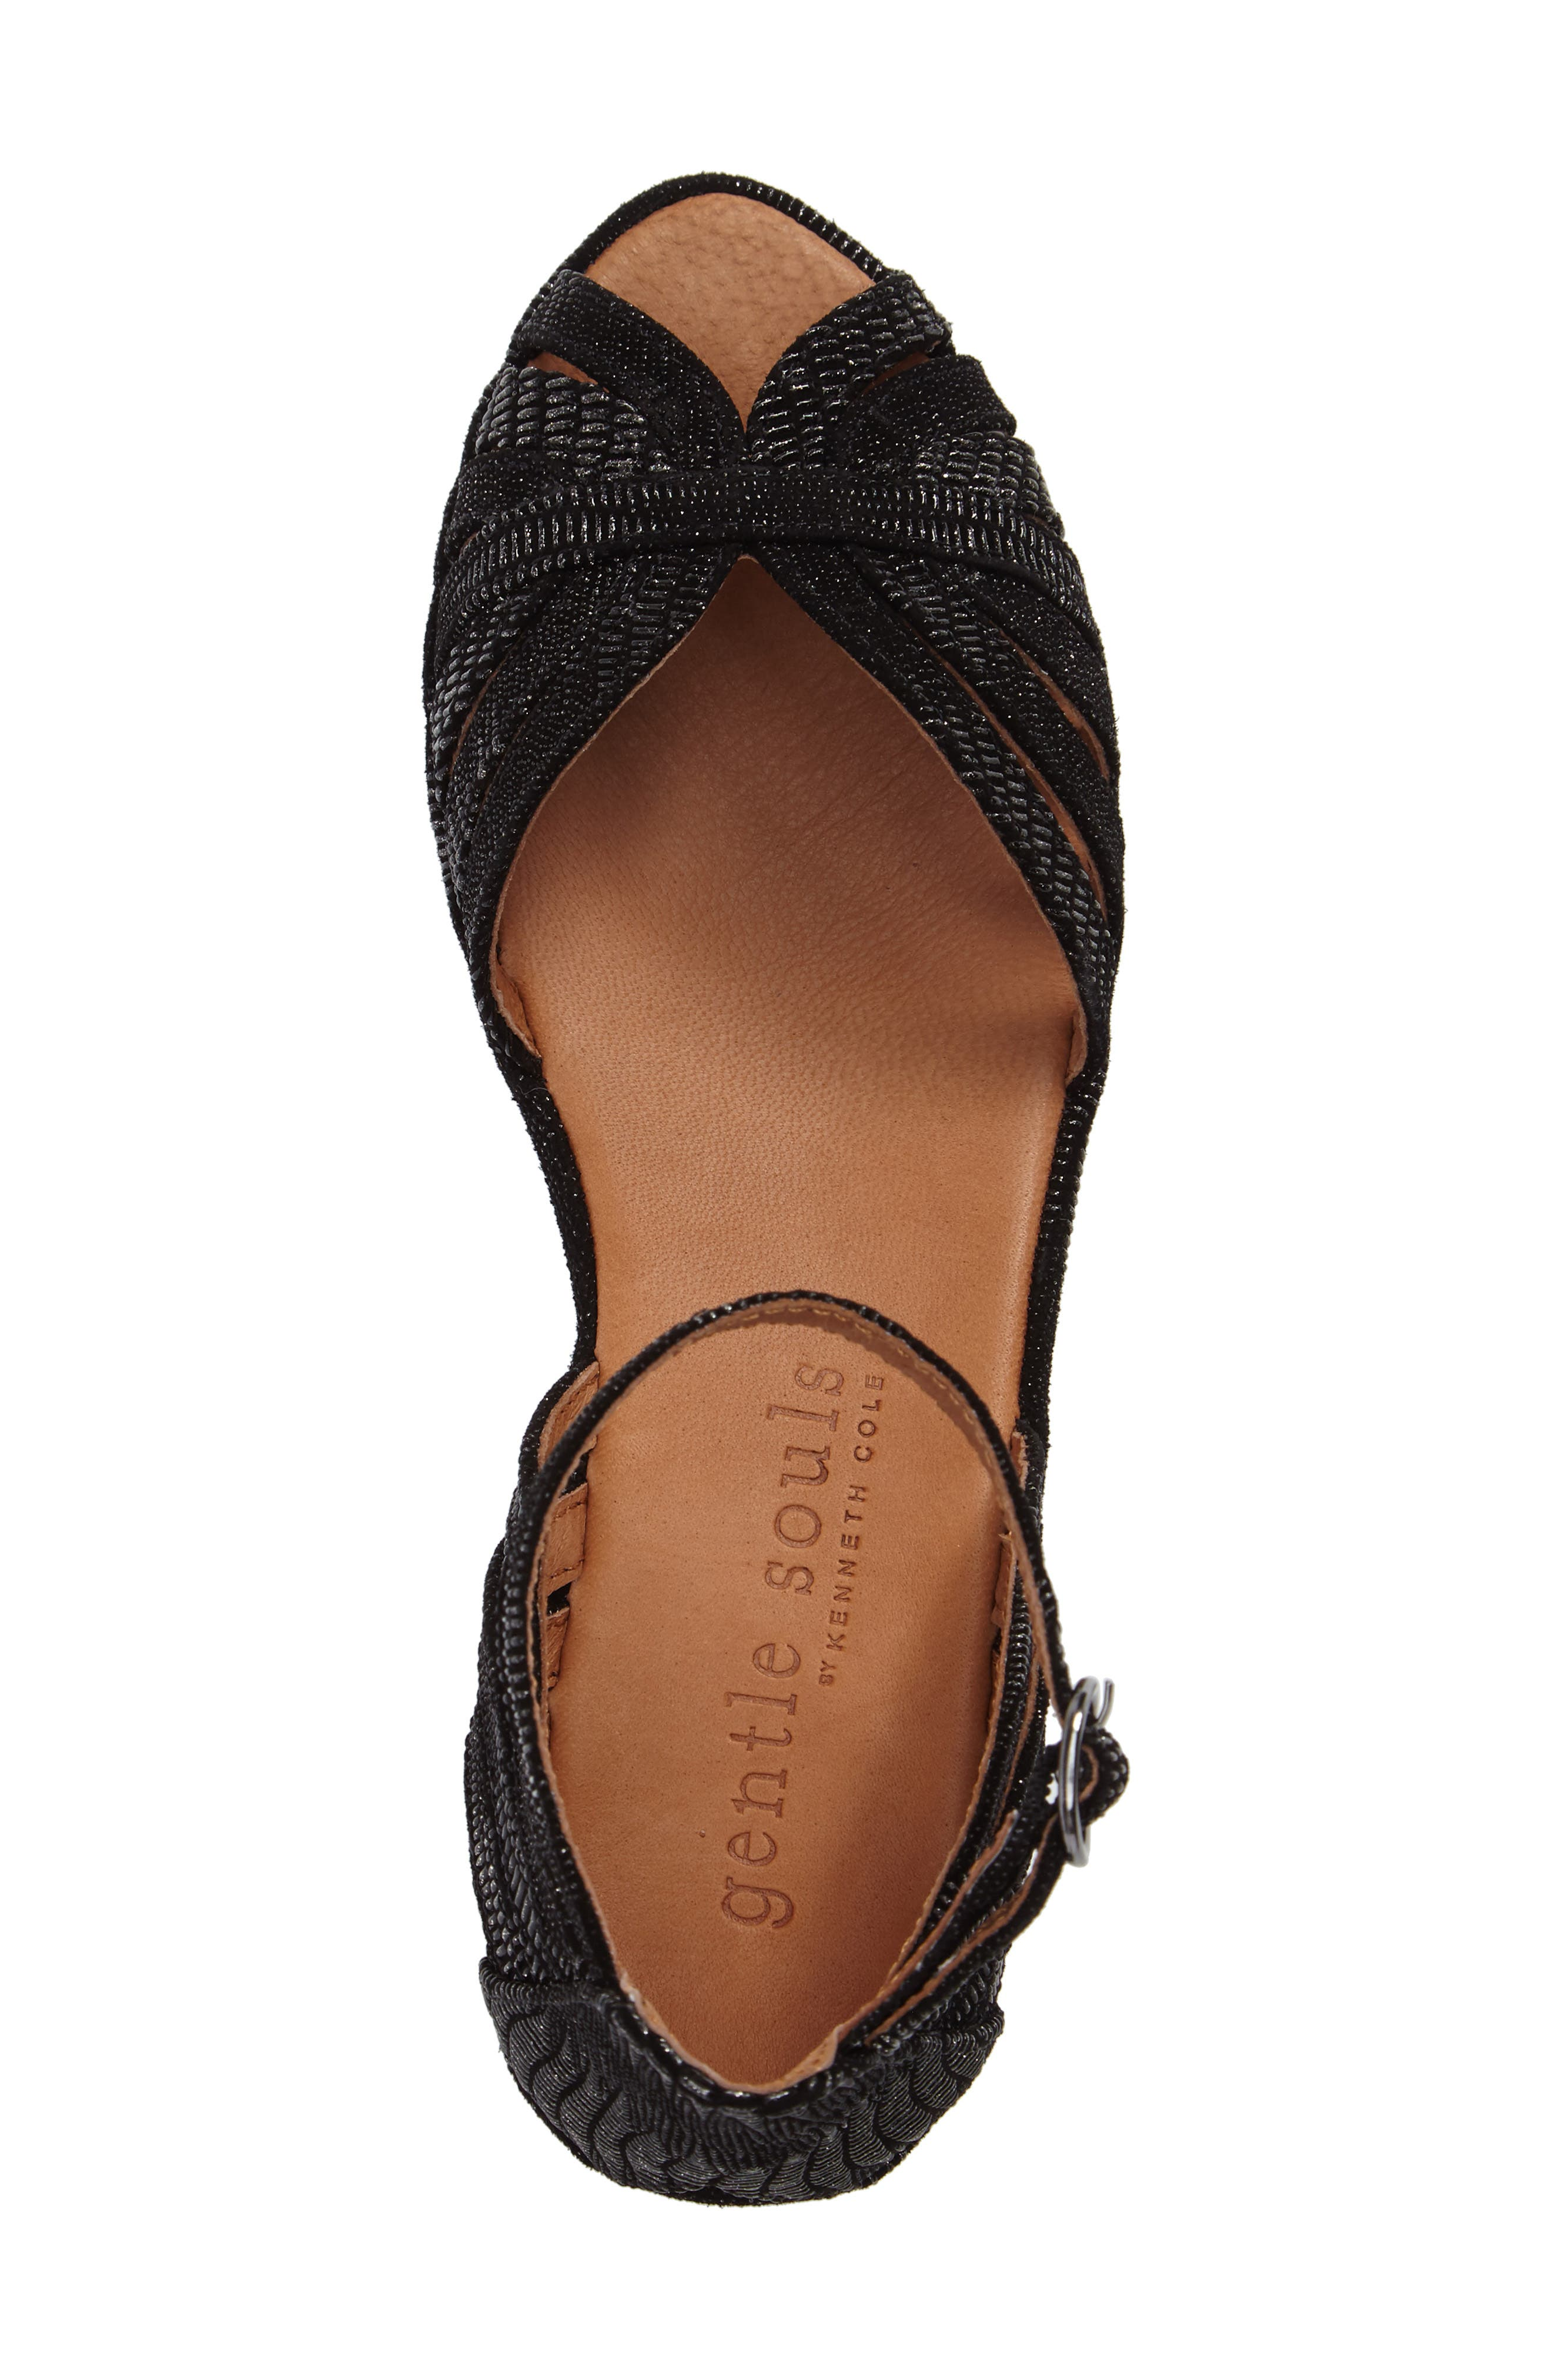 by Kenneth Cole 'Leah' Peep Toe Wedge Sandal,                             Alternate thumbnail 5, color,                             Black/ Black Leather